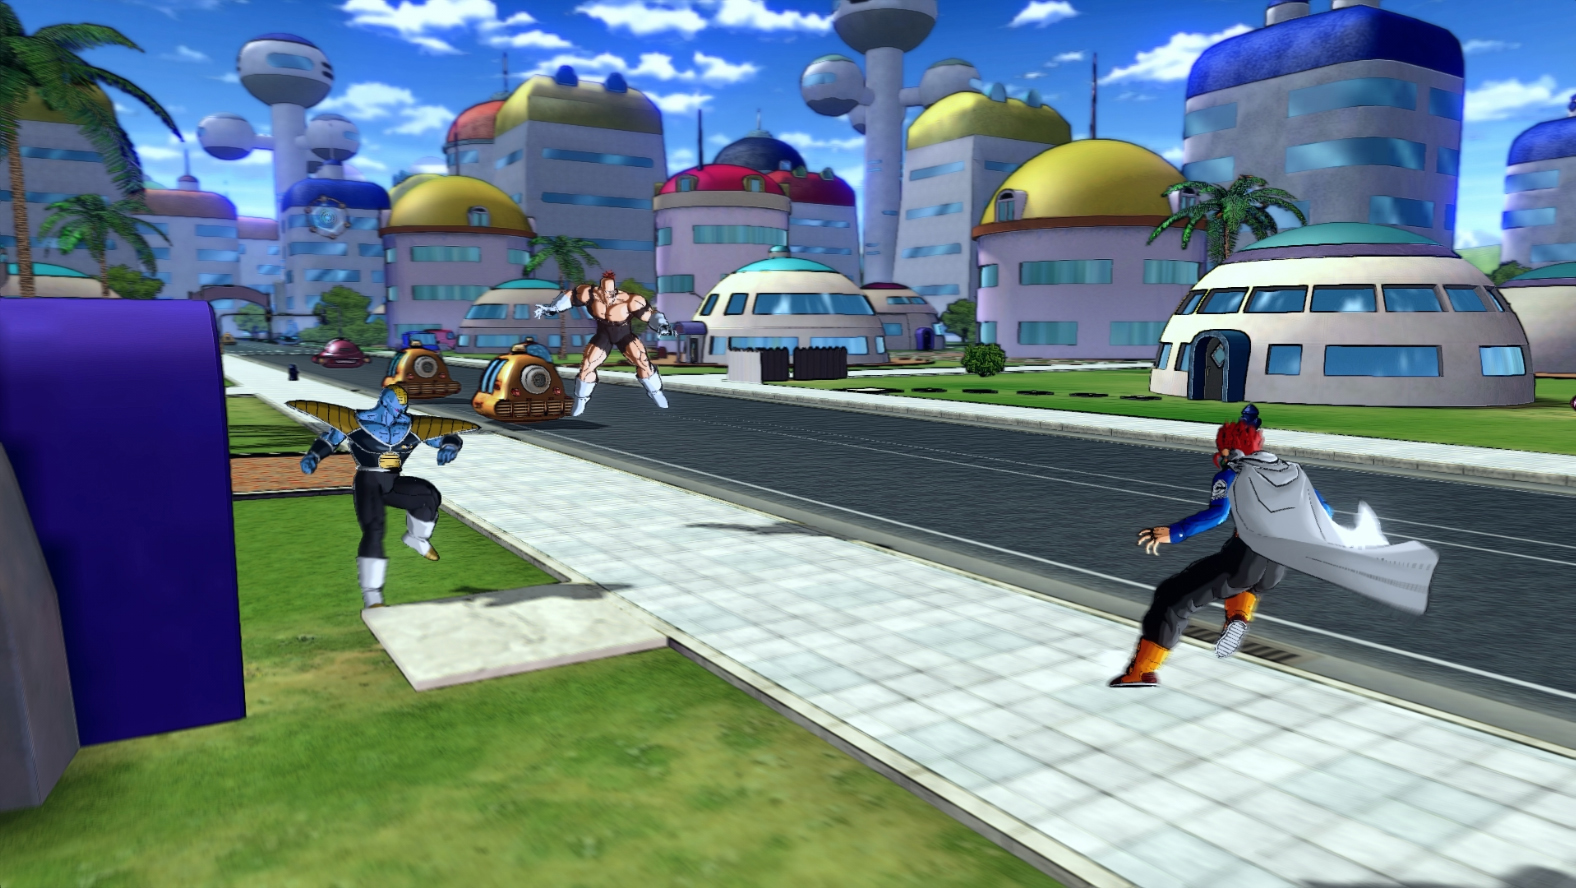 Dragon Ball Xenoverse Jan 2015 Screenshots 24